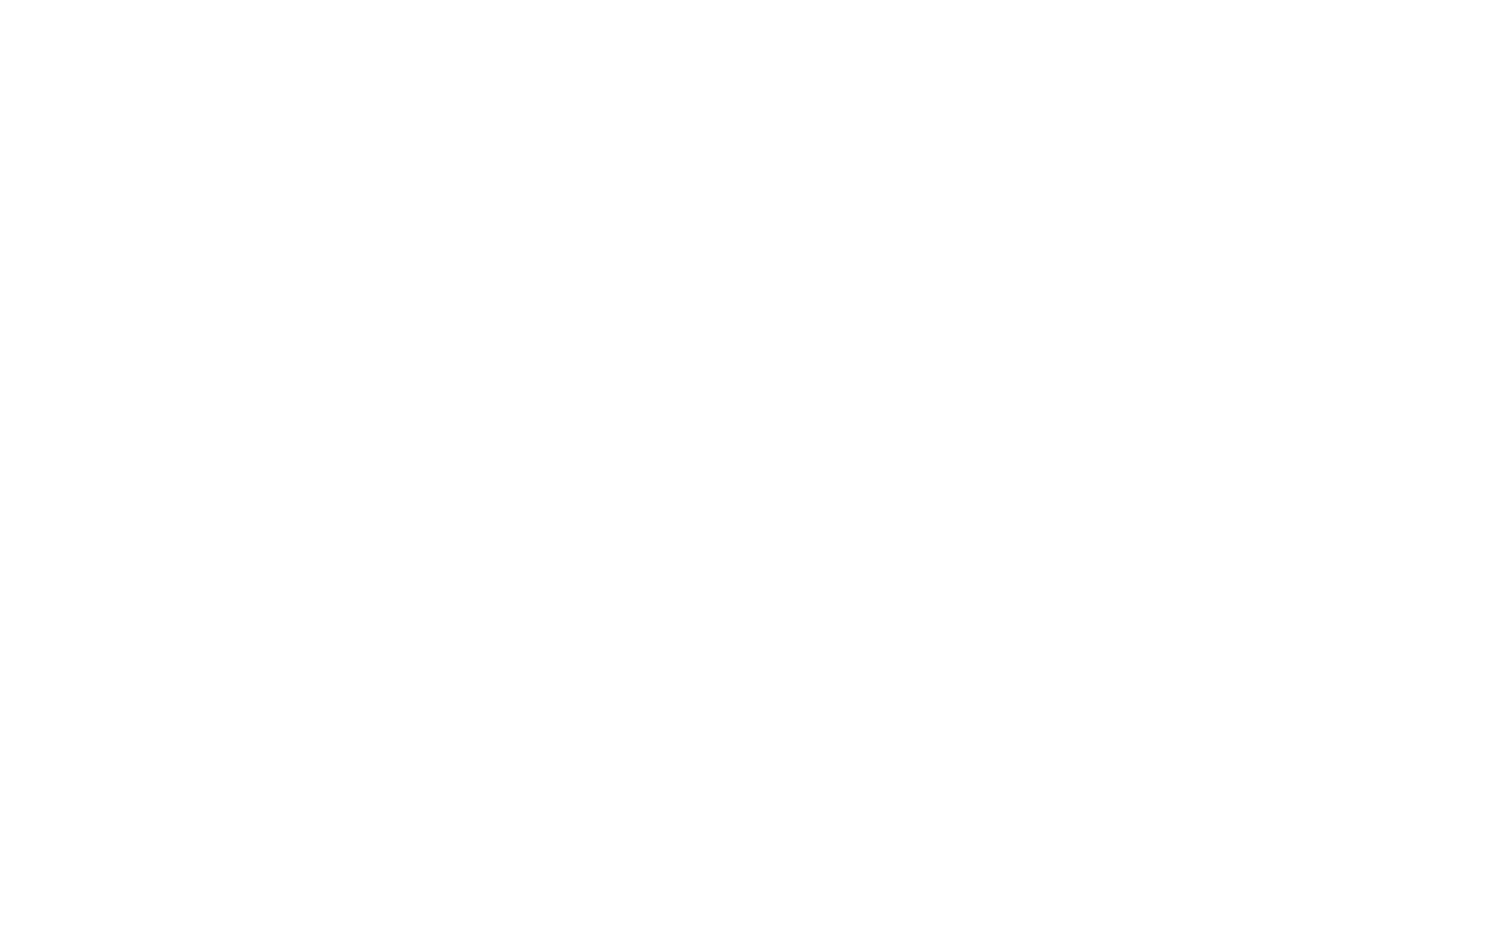 ATA - Making Transportation Safer